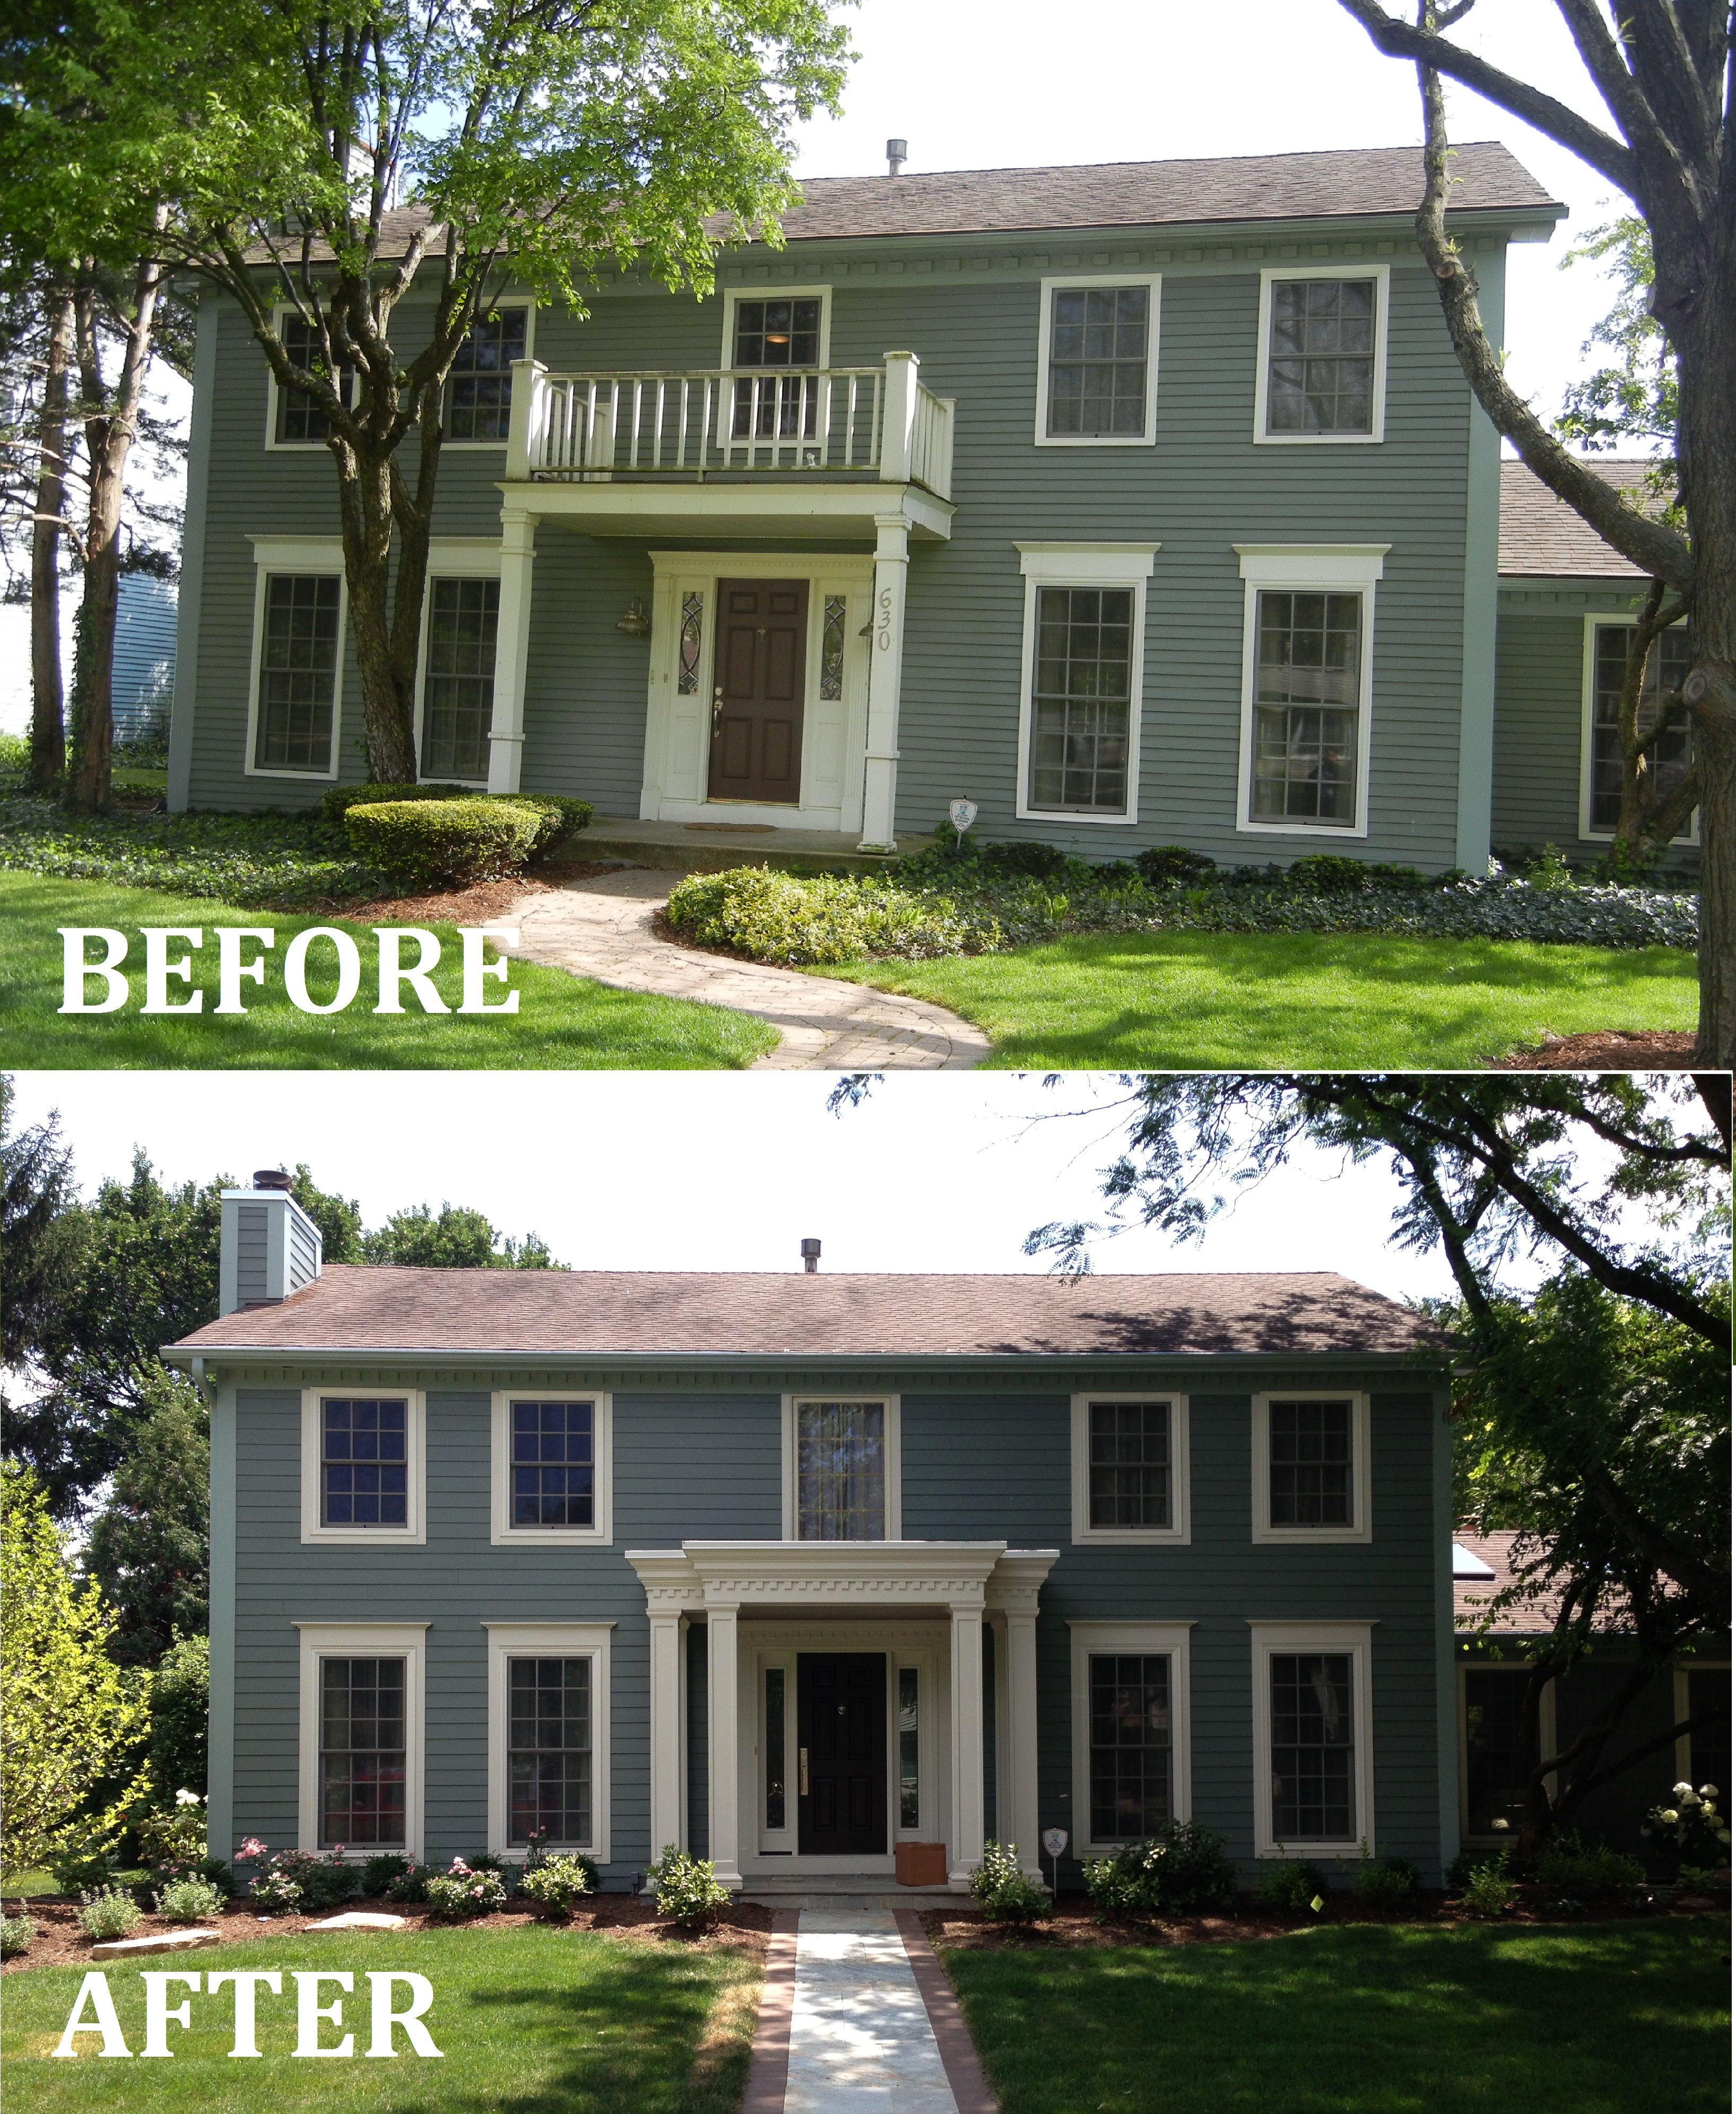 James hardie siding and new portico naperville - Colonial house exterior renovation ideas ...